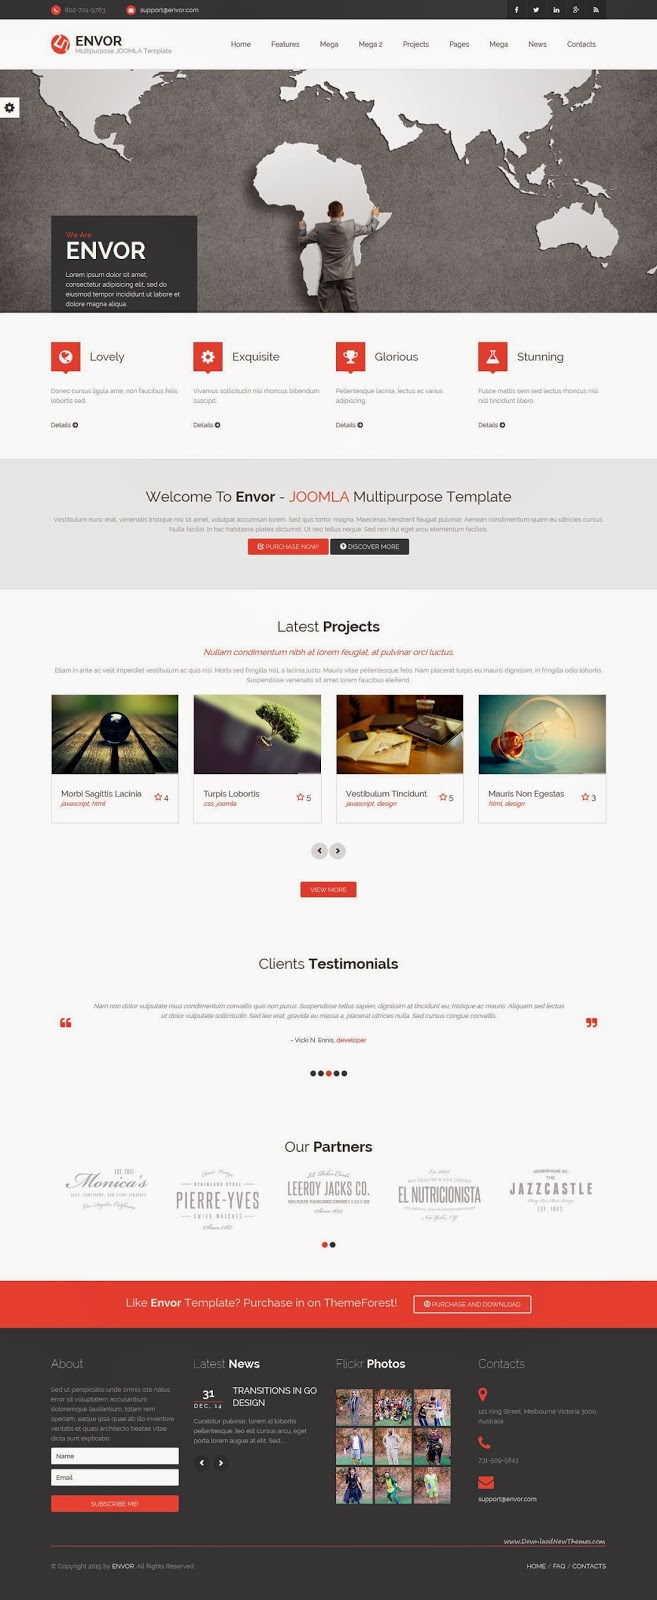 Best Multipurpose Joomla Template 2015